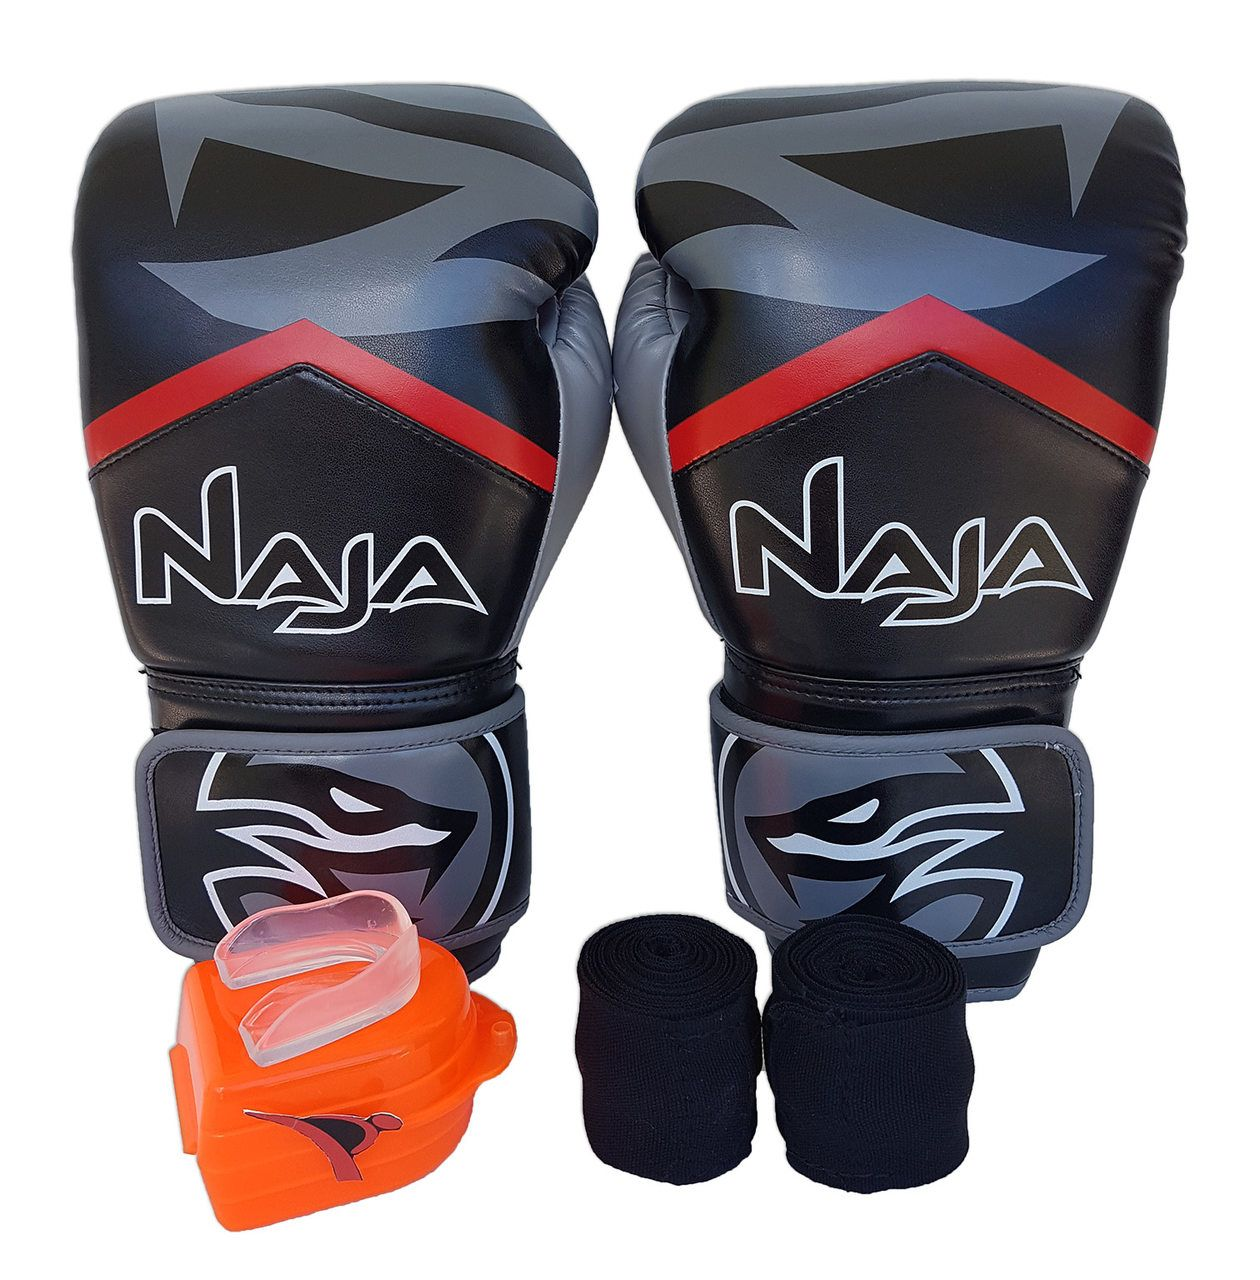 Kit De Boxe / Muay Thai 12oz - Preto - New Extreme - Naja - PRALUTA SHOP